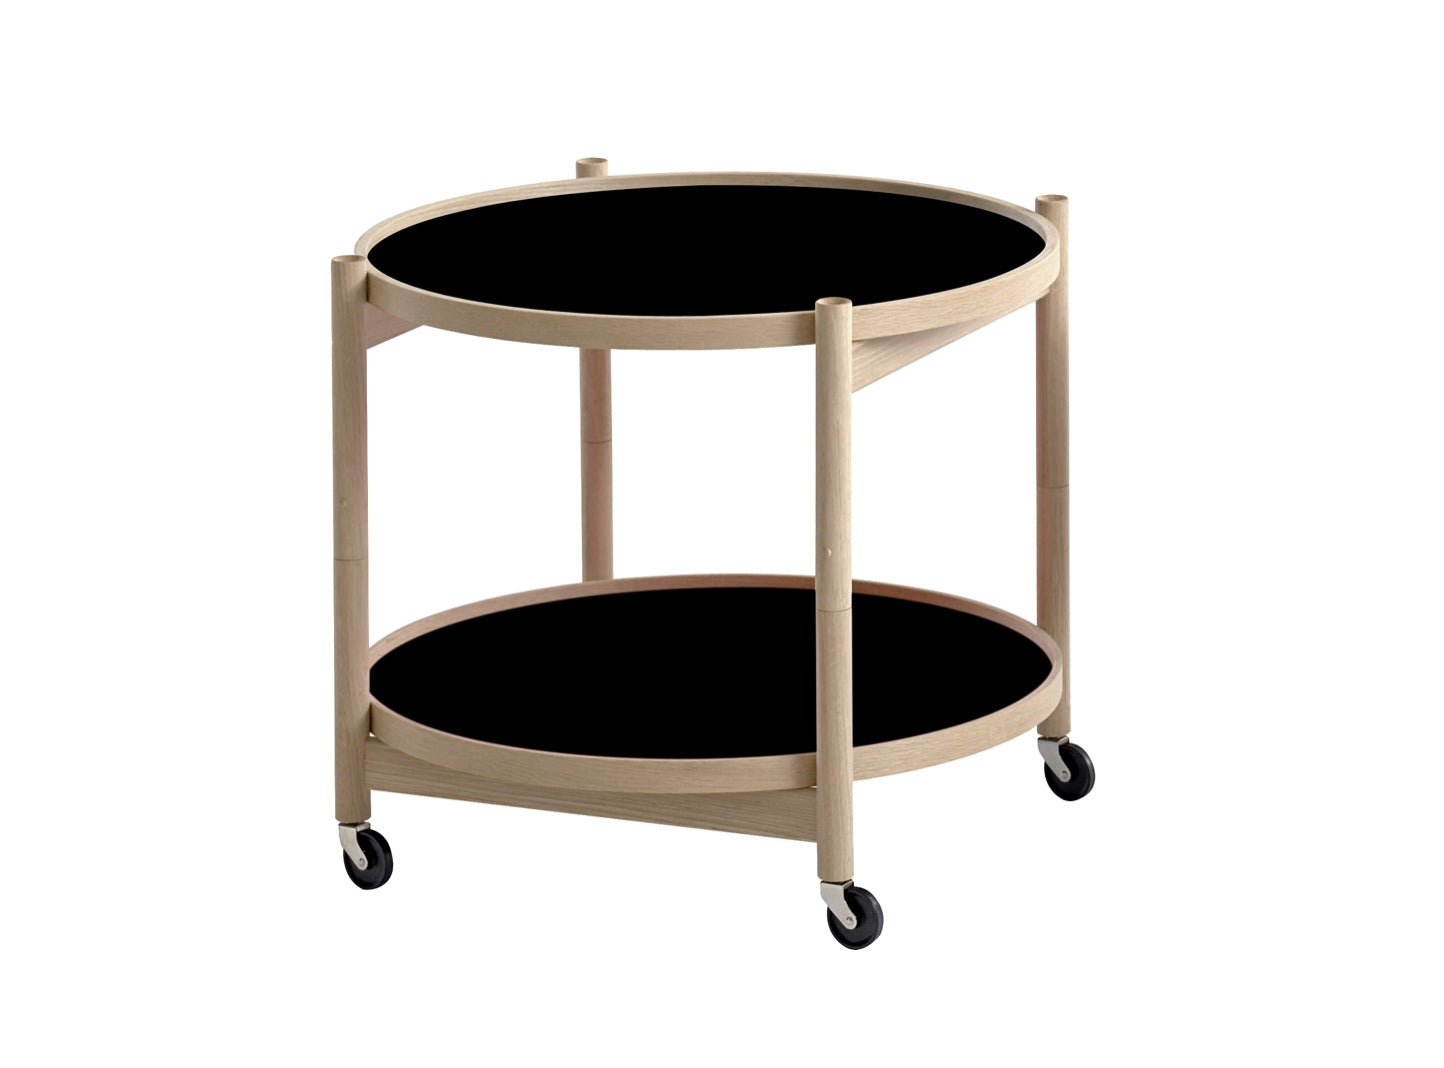 Subscription_OMNI_Brdr._Krüger_Large_Tray_Table_Black_classic_wheels_conference_office_wooden_frame_furniture_functional